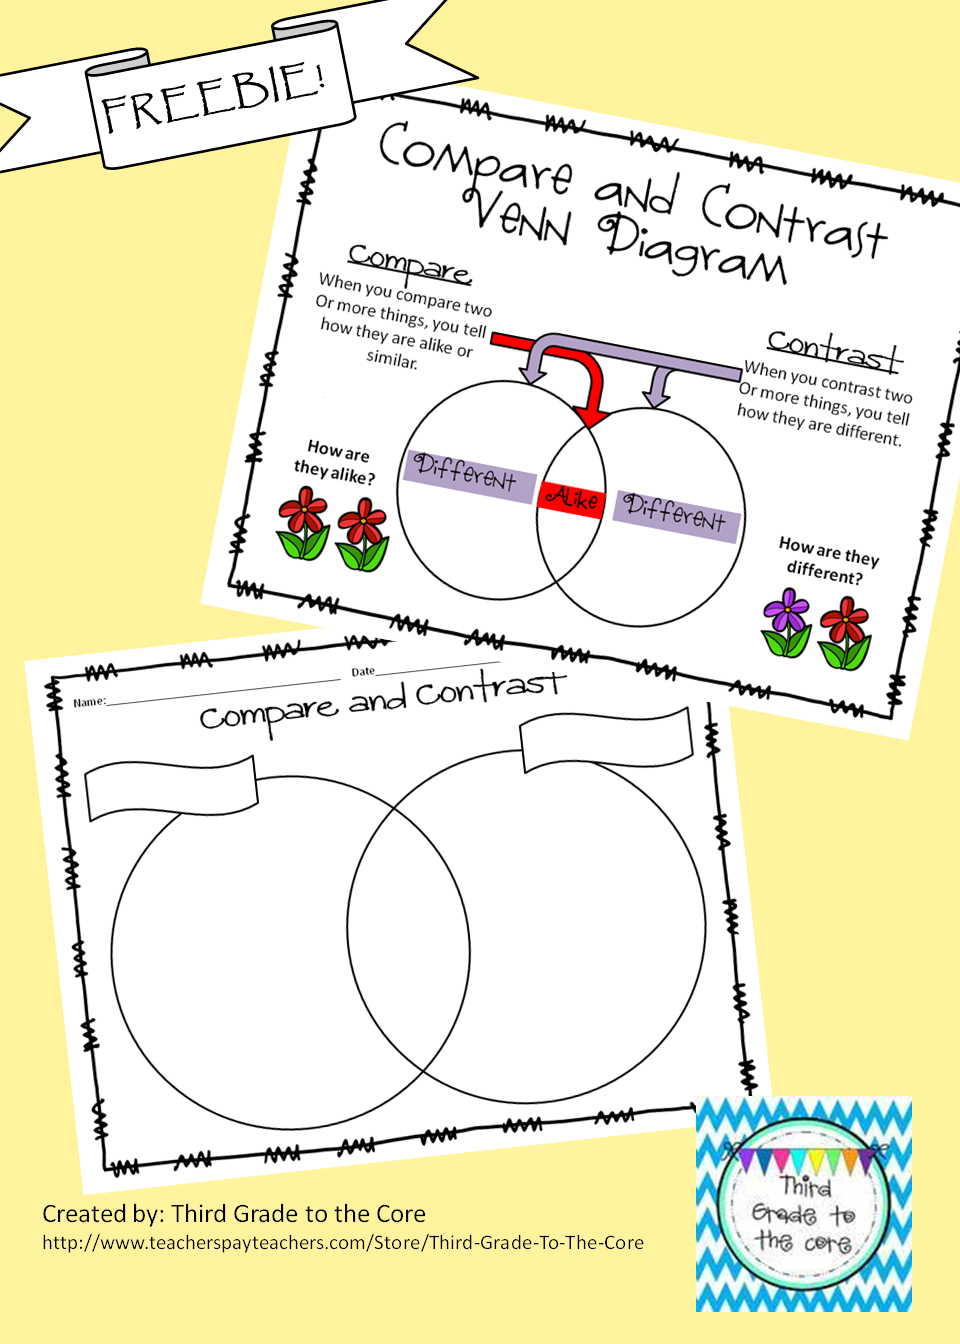 Freebie Compare And Contrast Venn Diagram With Classroom Poster